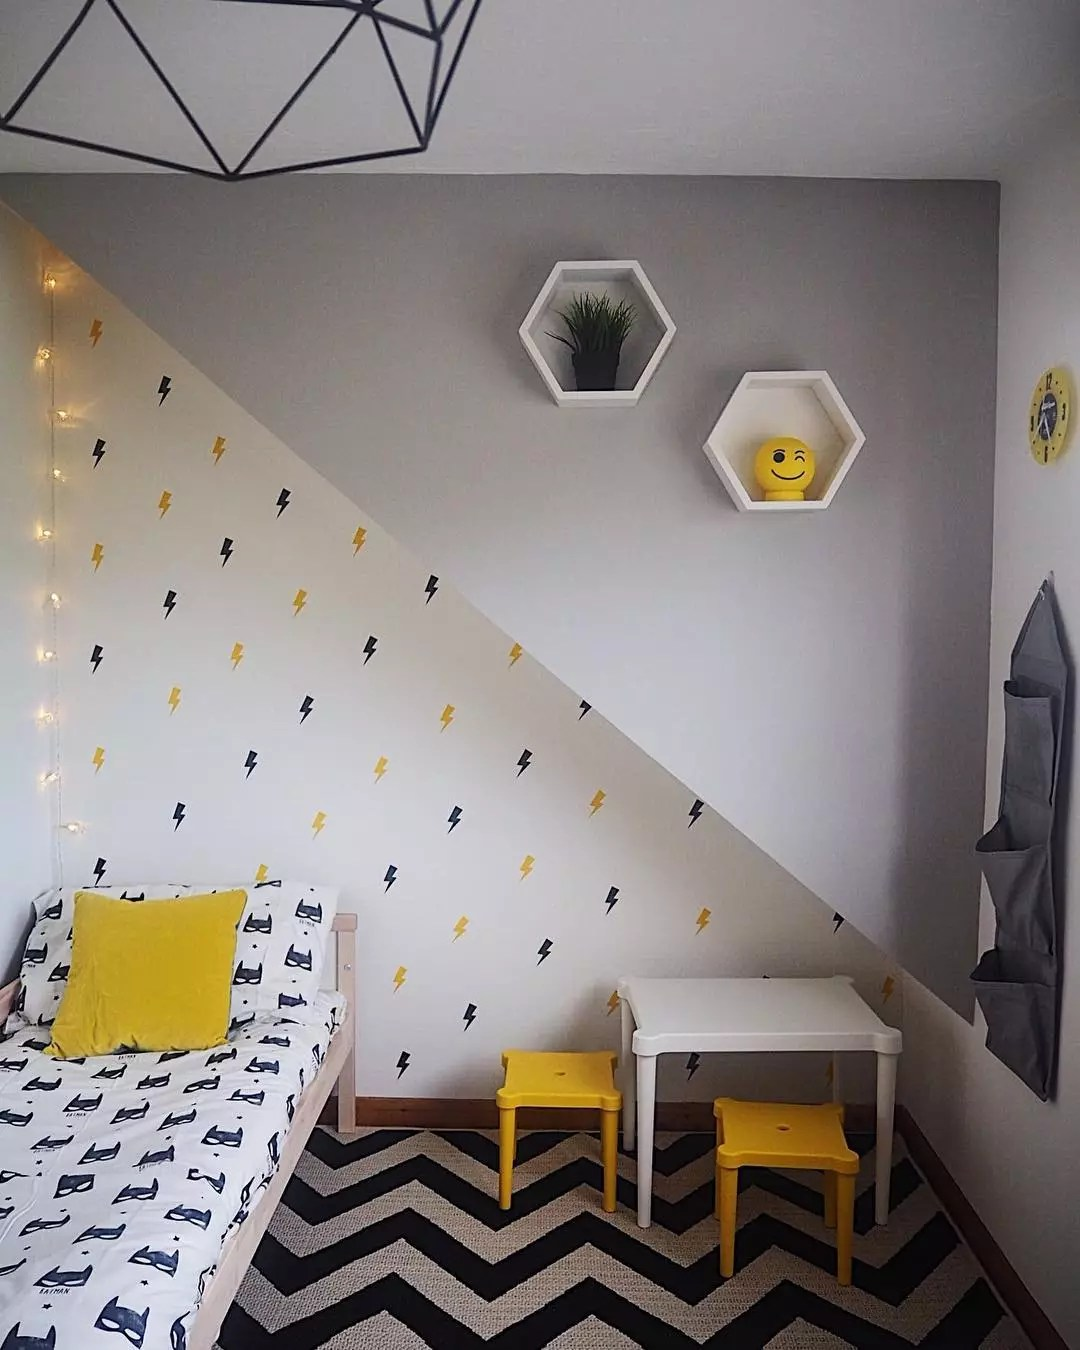 15 Small Kids Room Ideas To Maximize Space